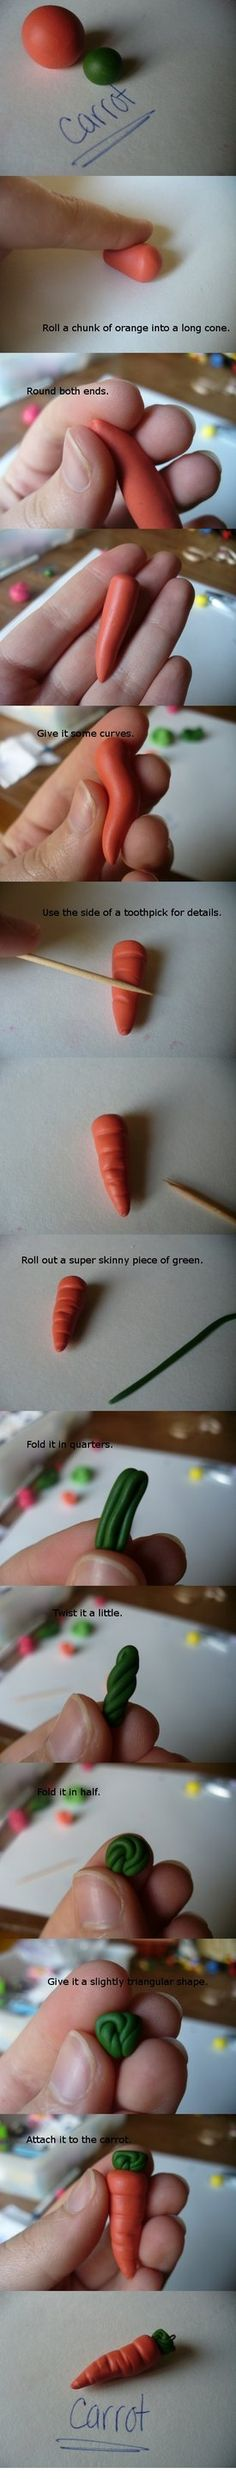 Carrot Polymer Clay Tutorial by ~paperfaceparade on deviantART